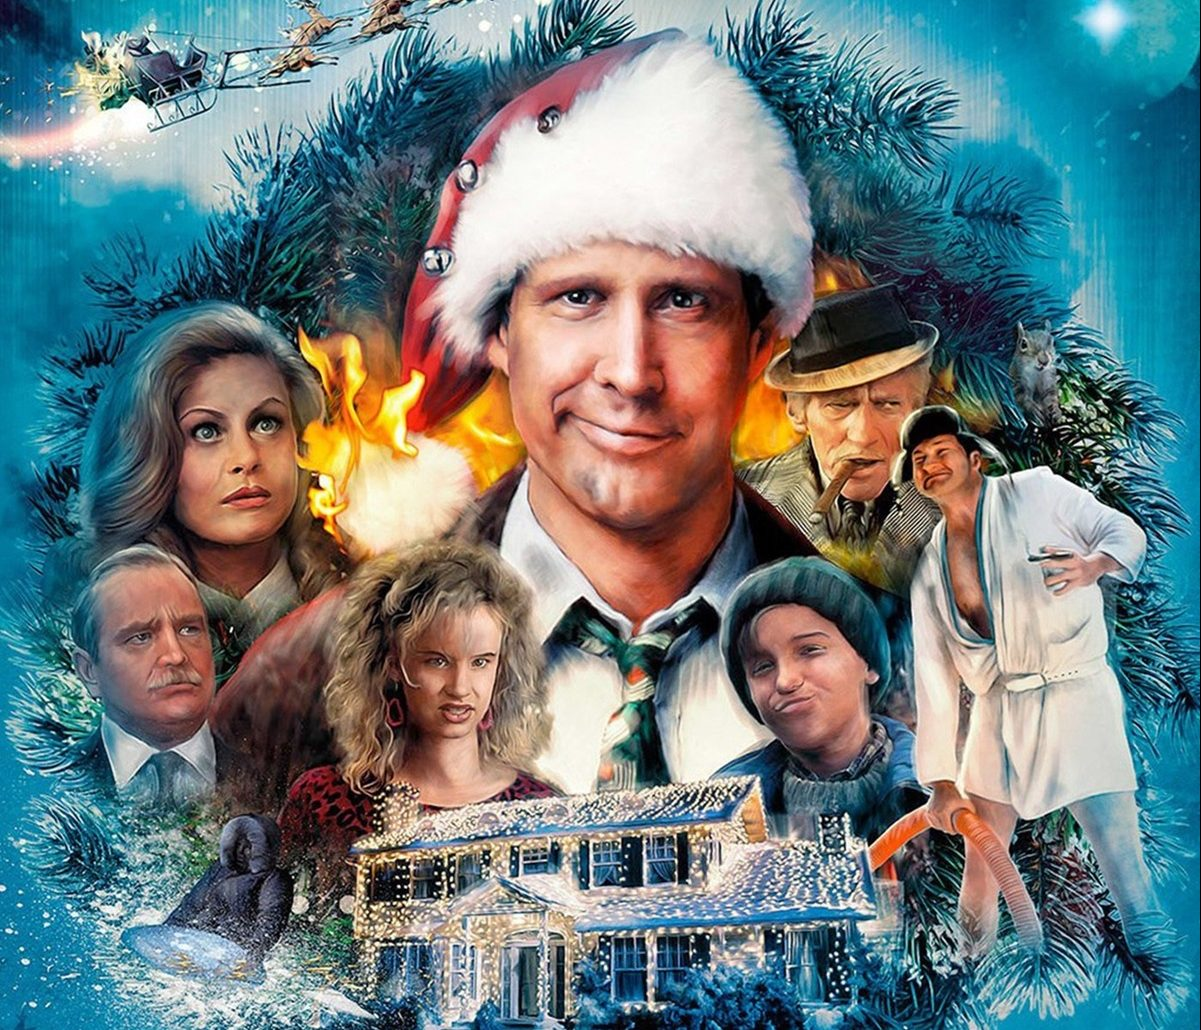 7 16 e1605265879640 30 Things You Probably Didn't Know About National Lampoon's Christmas Vacation